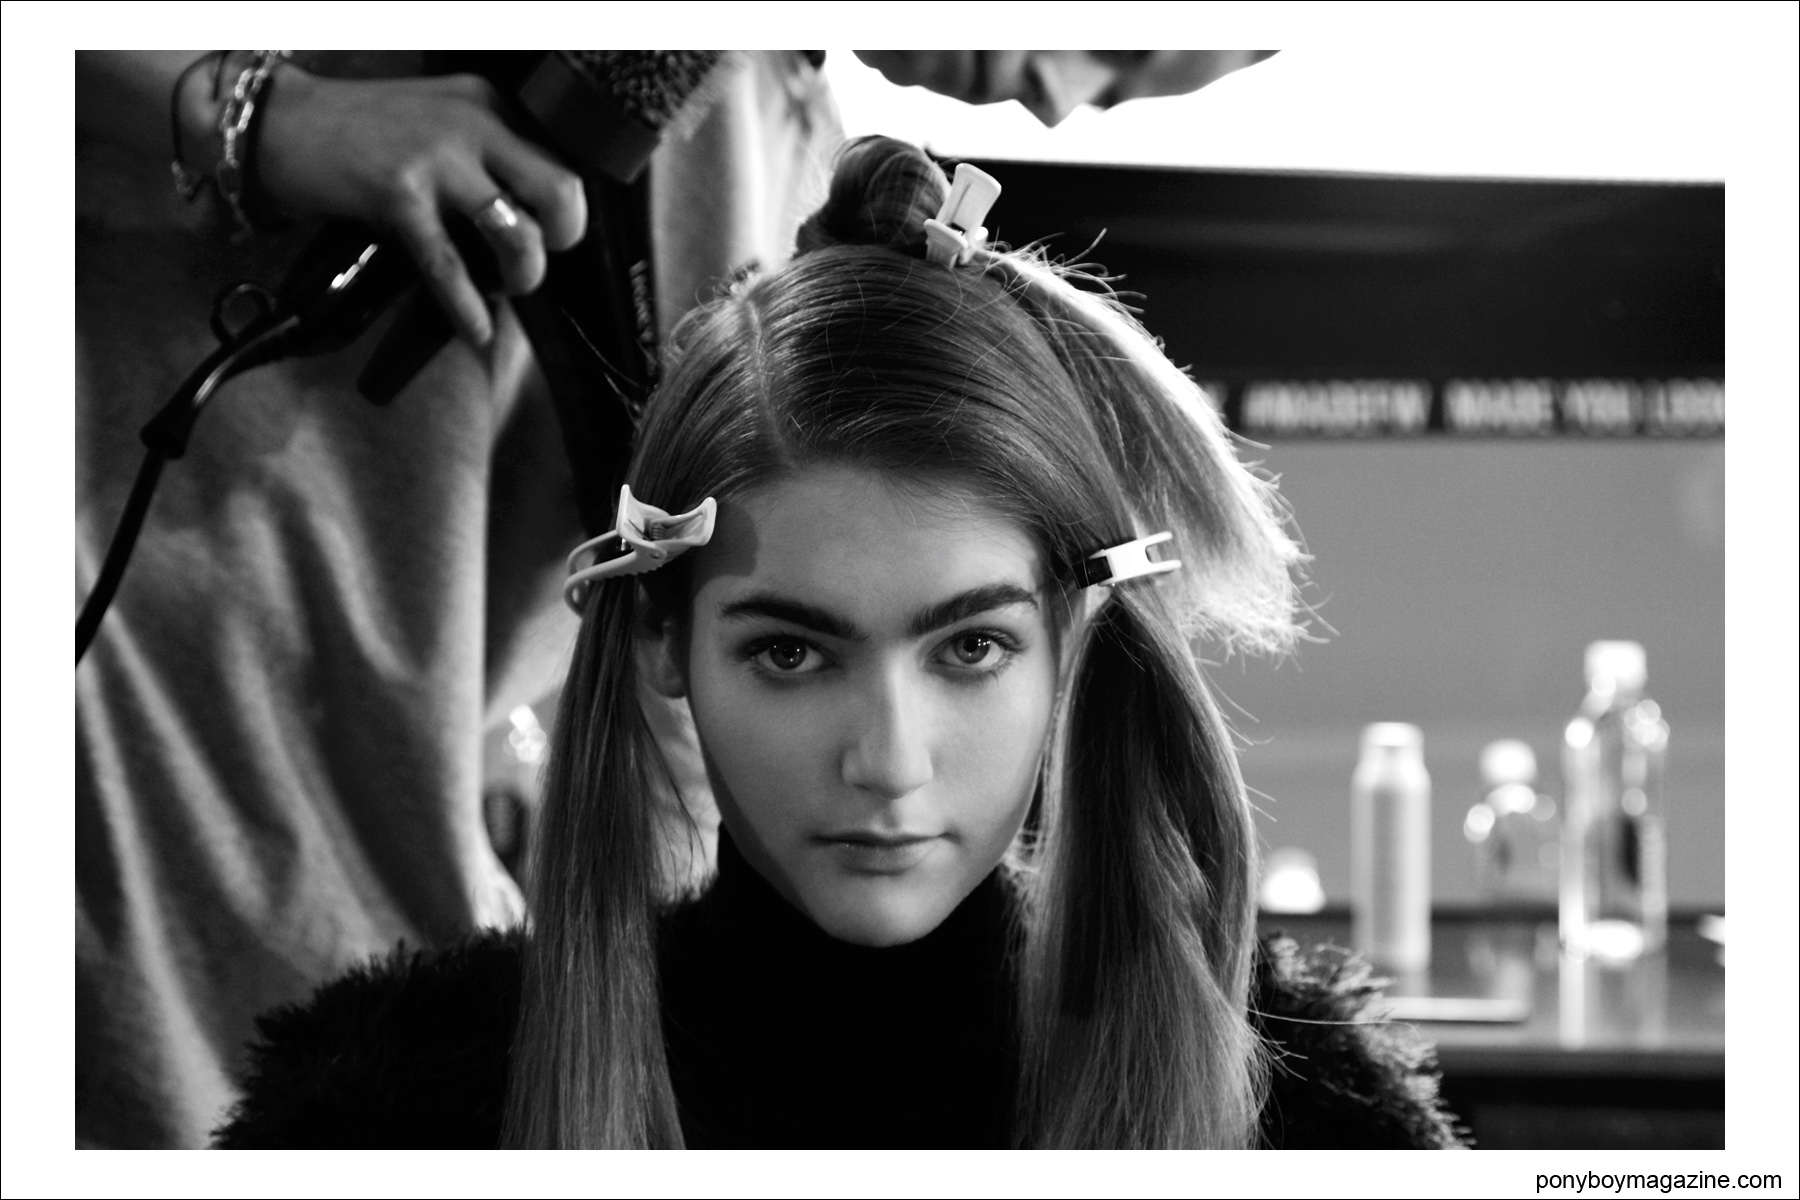 A model gets her hair done, backstage at Timo Weiland A/W 2014 fashion show in Manhattan. Photography by Alexander Thompson for Ponyboy Magazine.